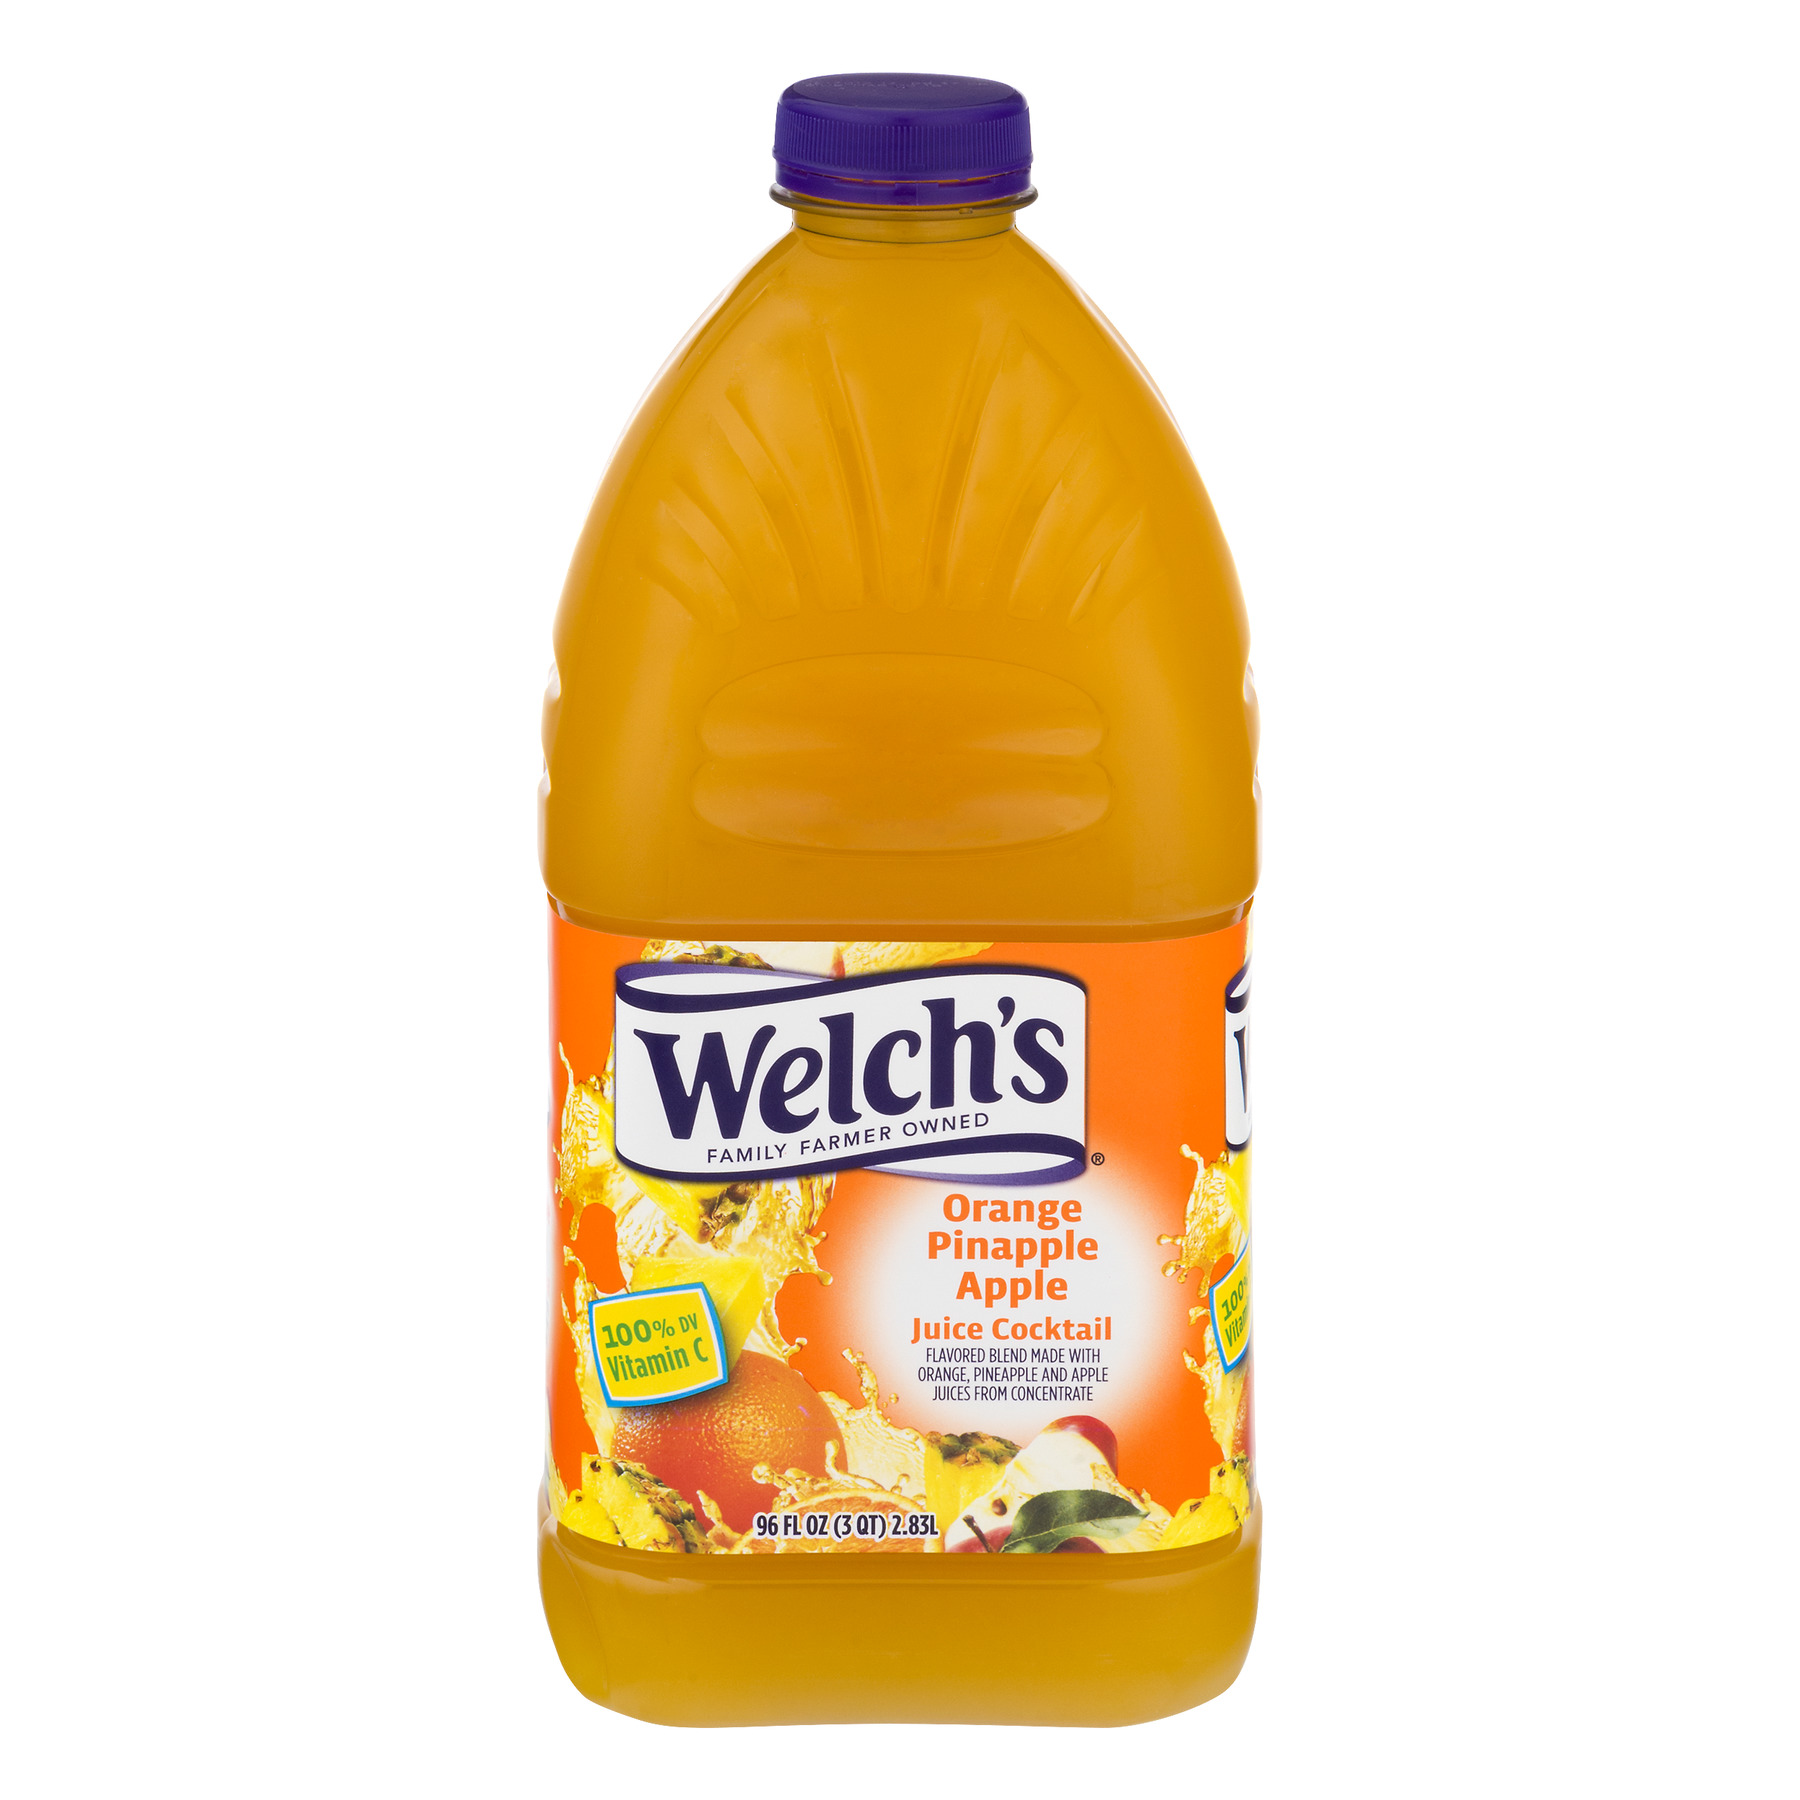 Welch's Juice Cocktail, Orange Pineapple Apple, 96 Fl Oz, 1 Count